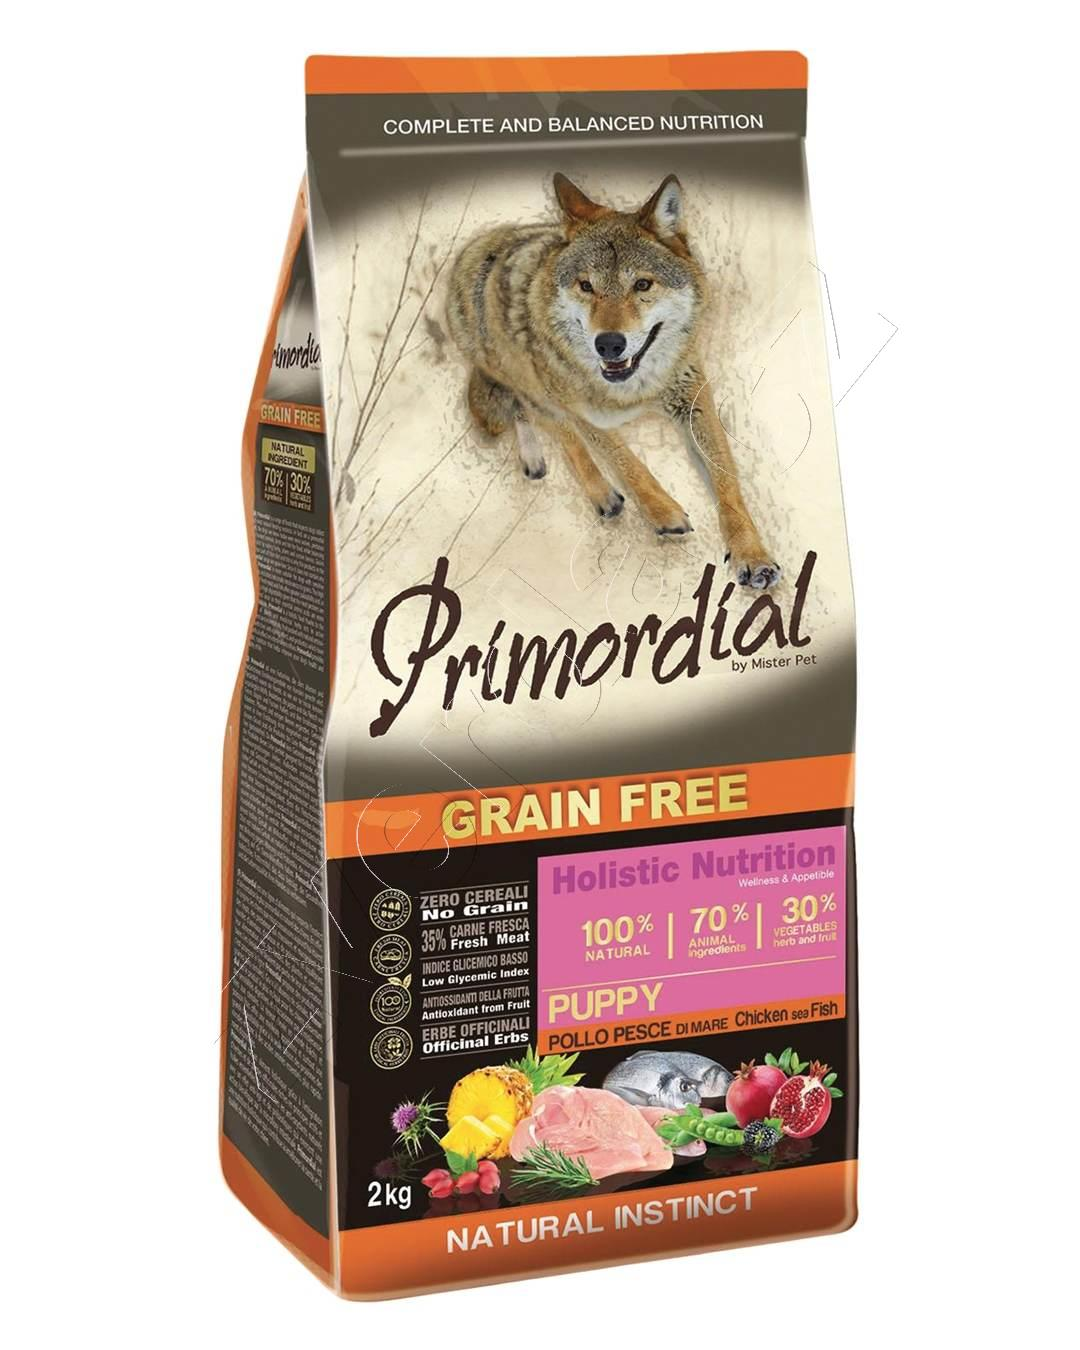 Primordial Grain Free Puppy Chicken & Sea Fish 12kg 2x